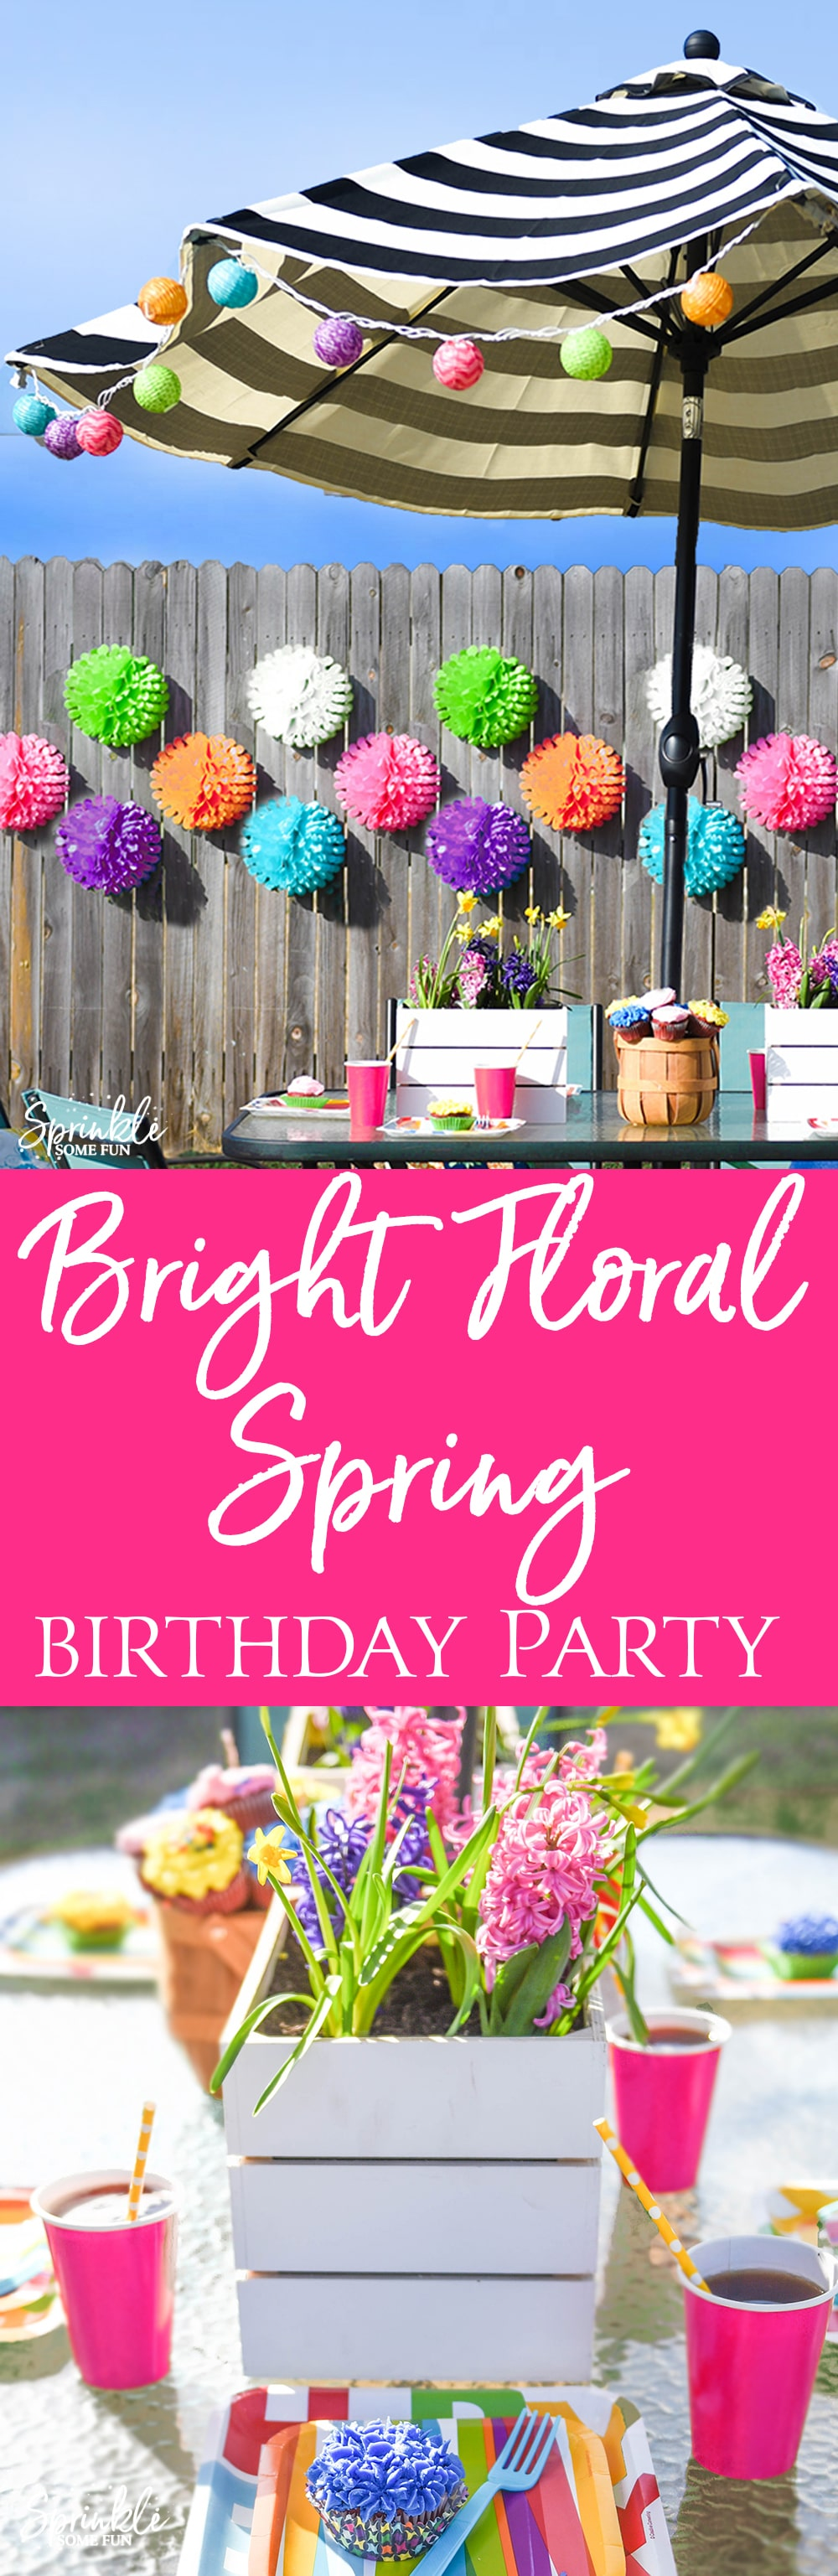 This Bright Floral Spring Birthday Party is bursting with color and floral touches!  A mix of outdoor decorations and bright party supplies is a great way to celebrate outdoors.